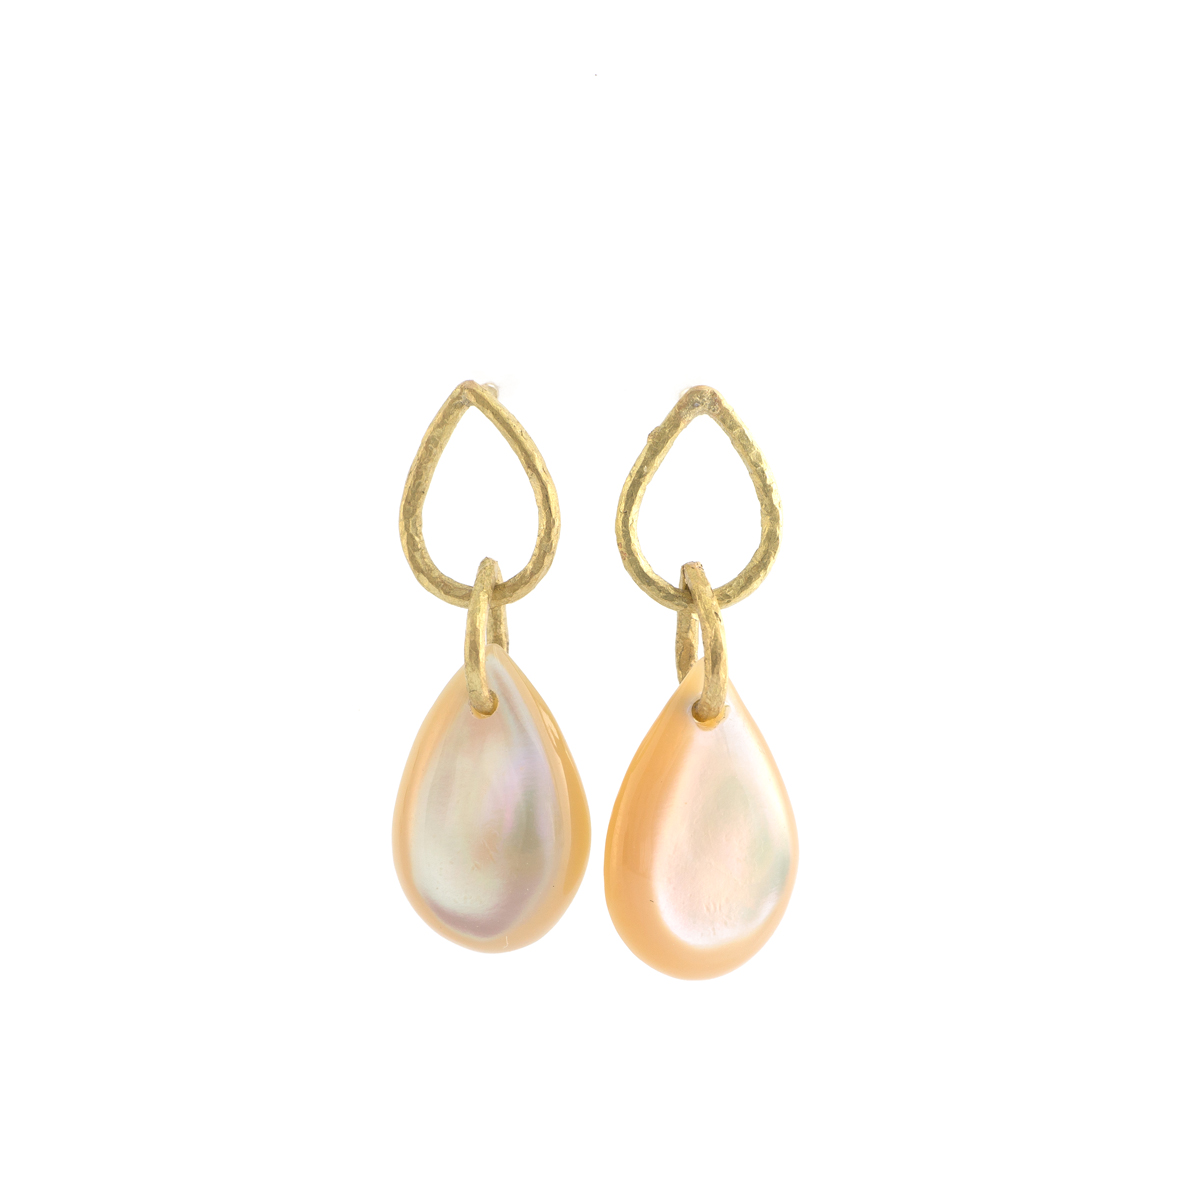 yellow gold drop earrings with shell from Yakushima Island 海のしずくネックレス